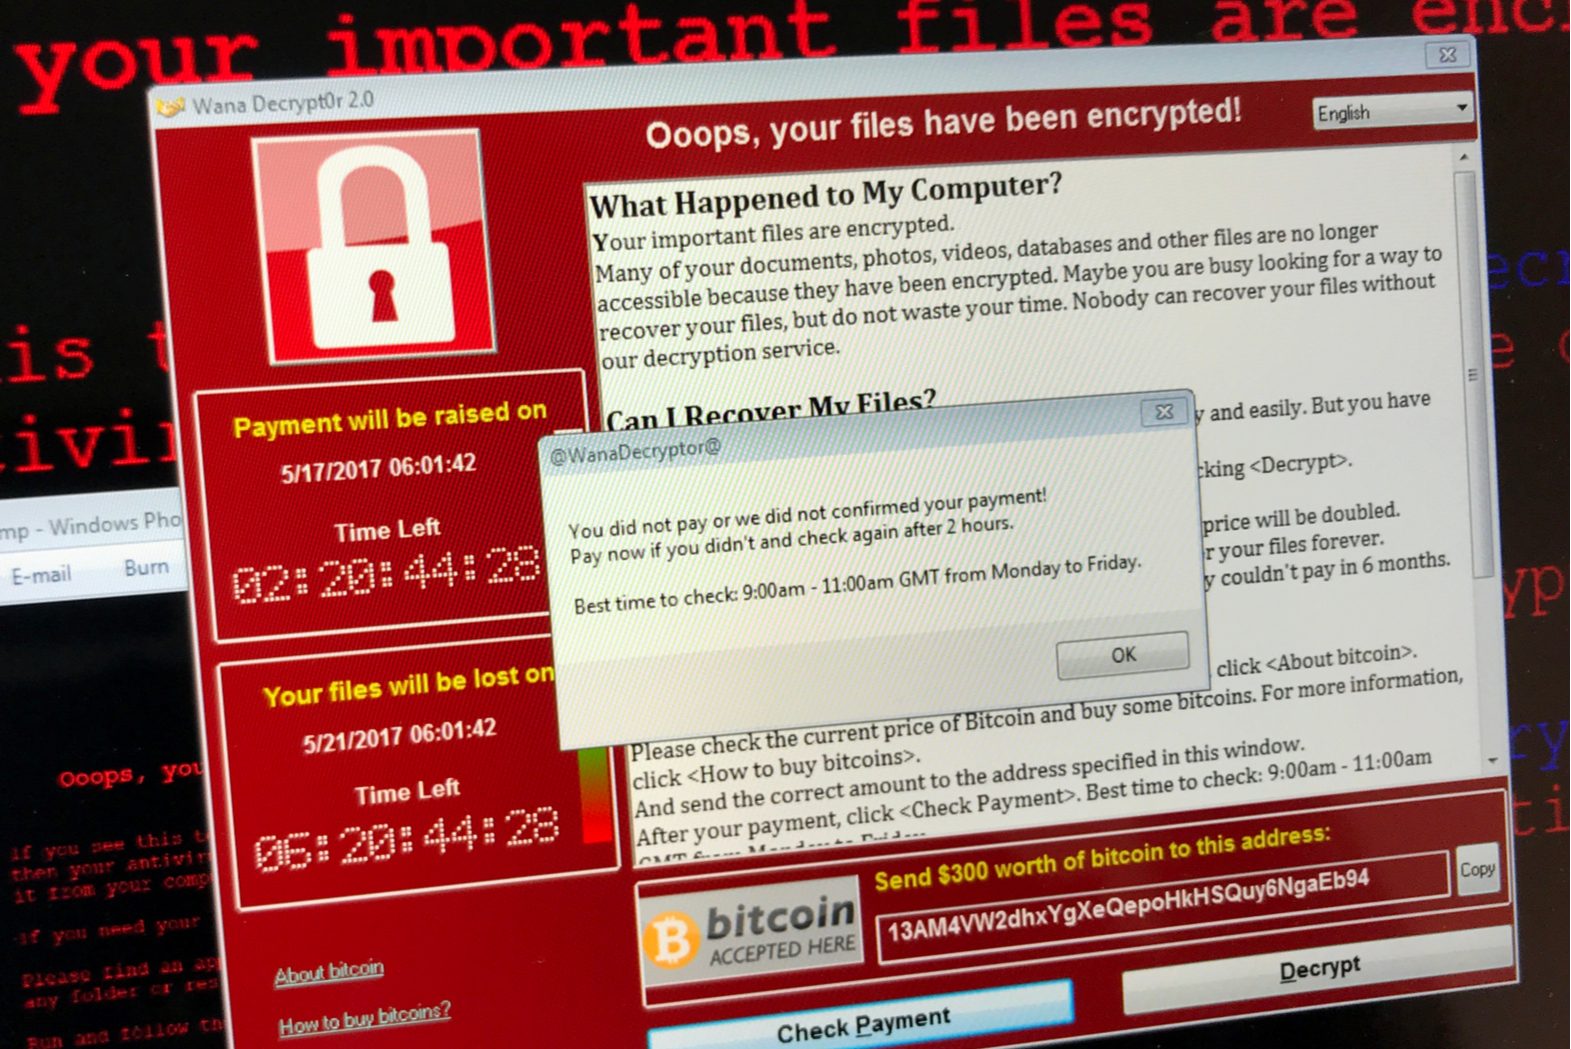 Cost-cutting could put the NHS at risk of suffering another cyberattack